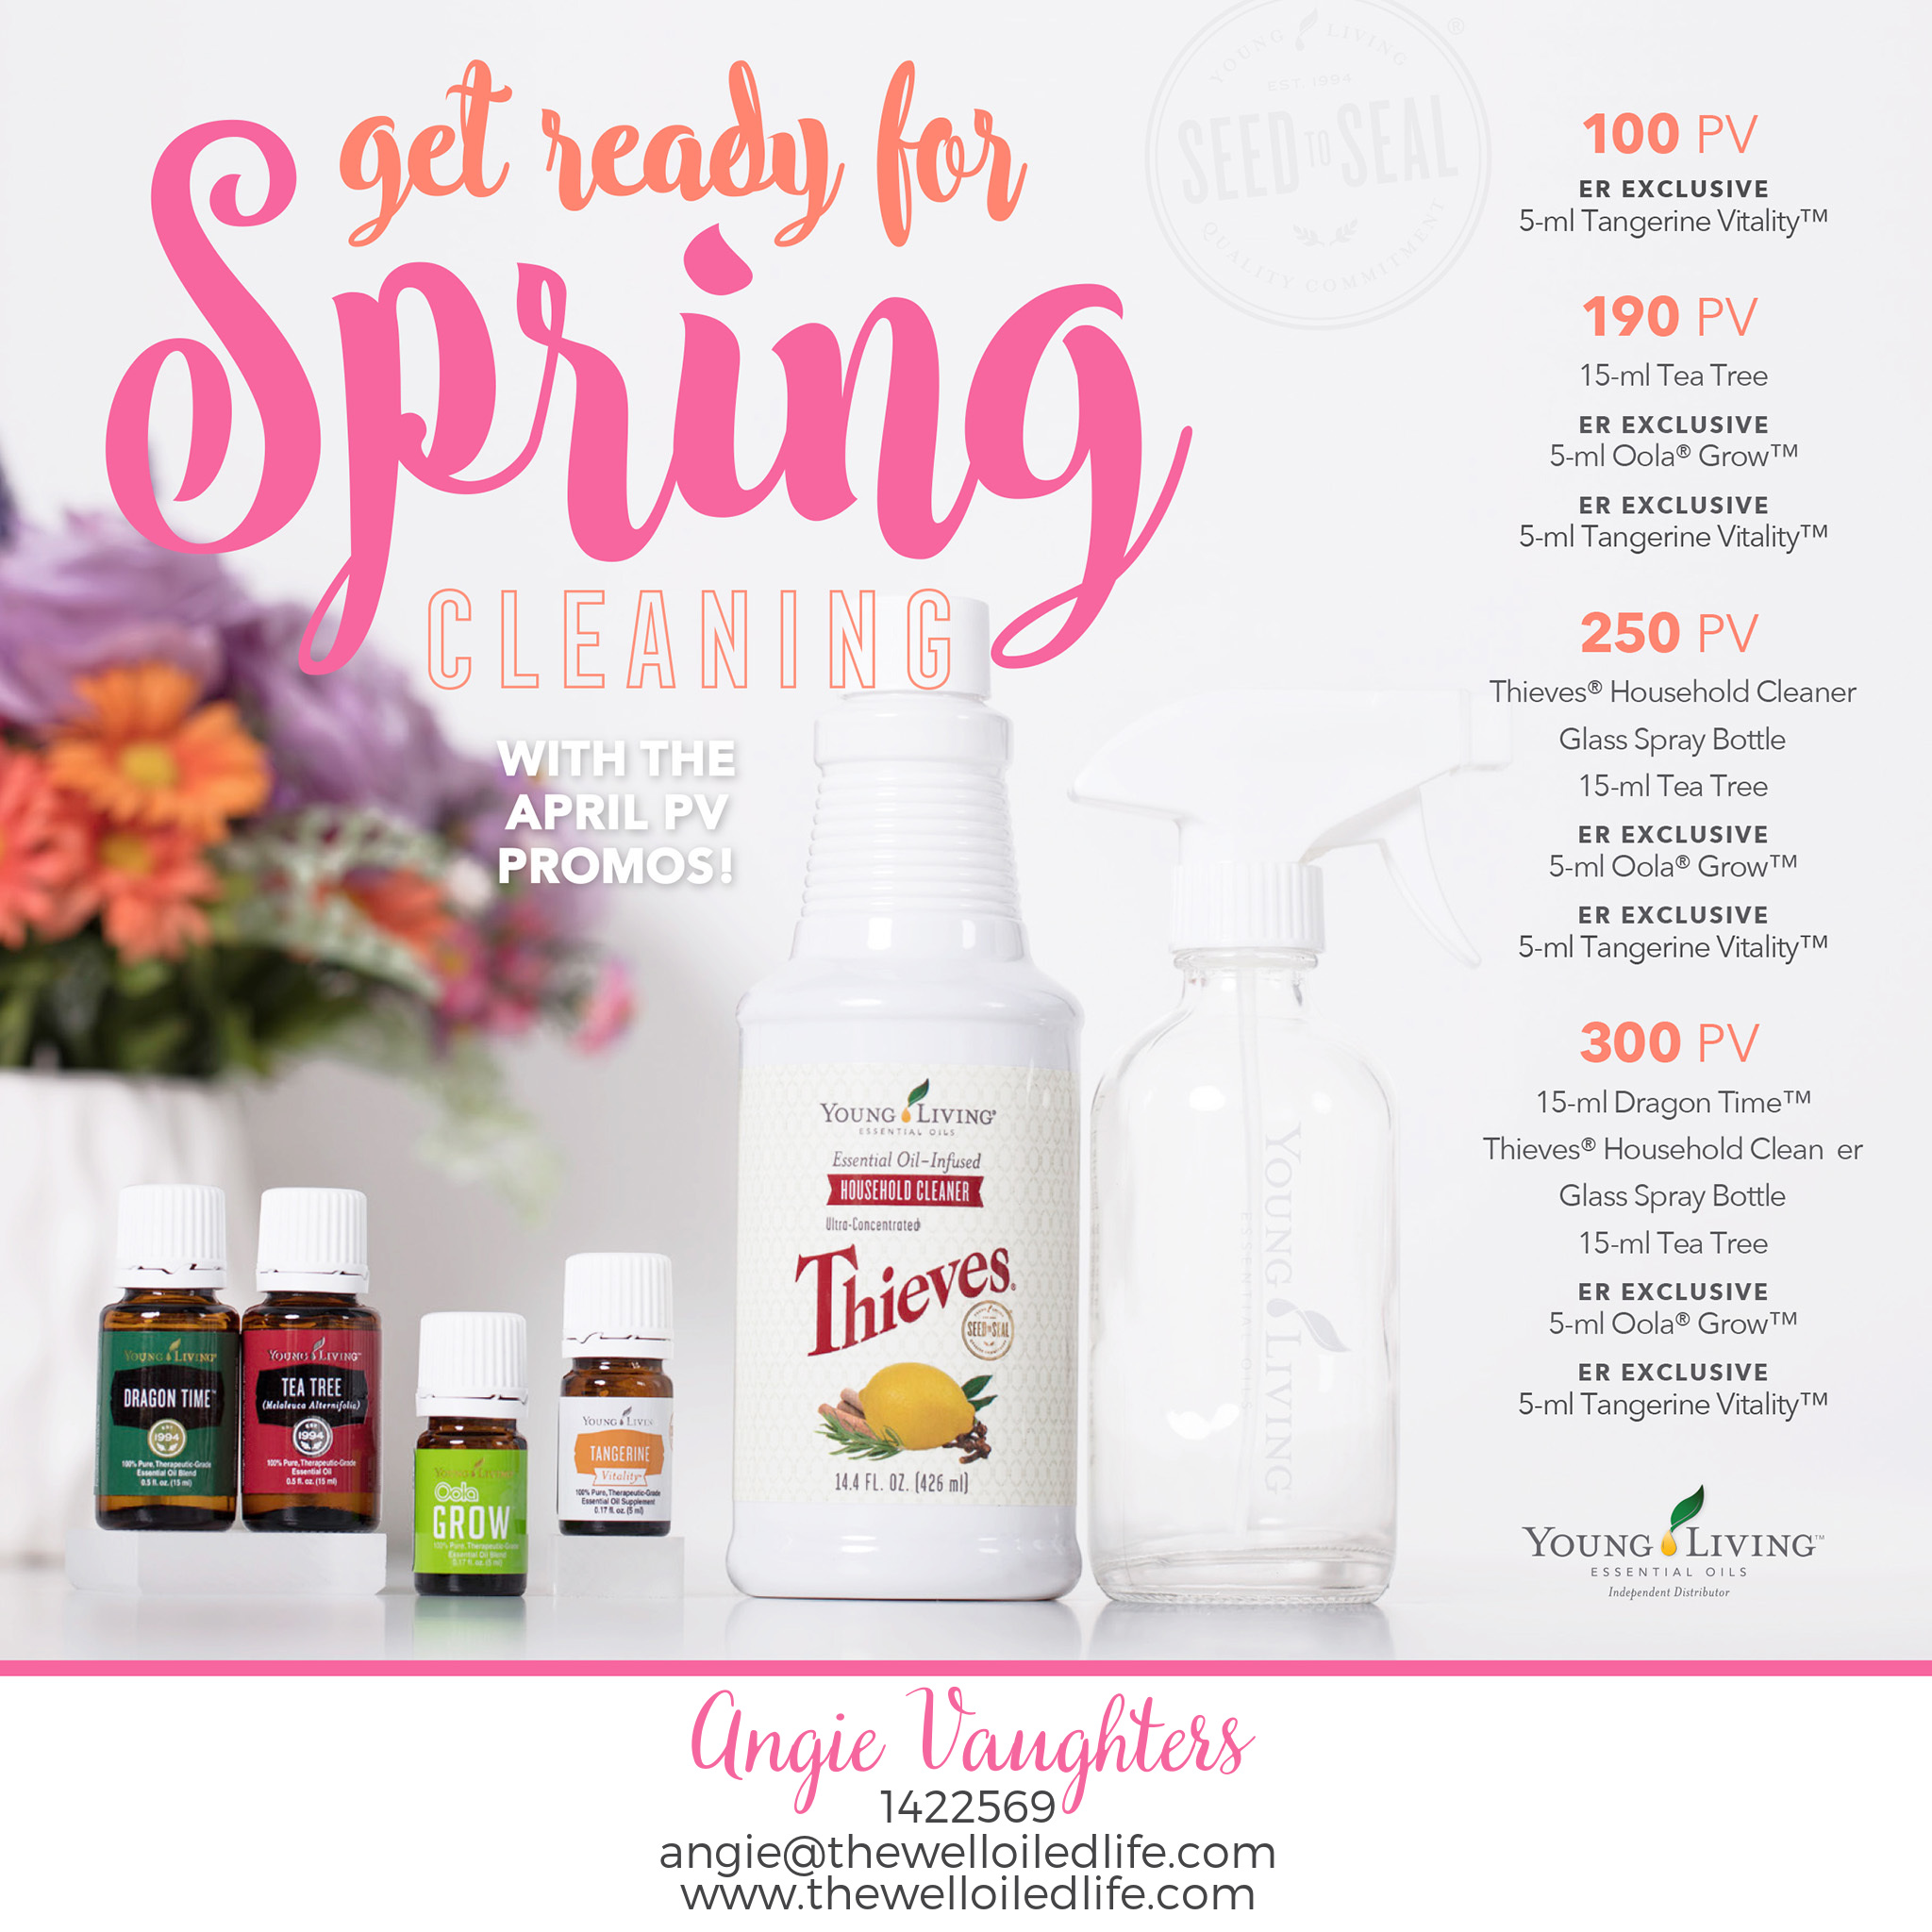 Young Living April 2017 Promotion